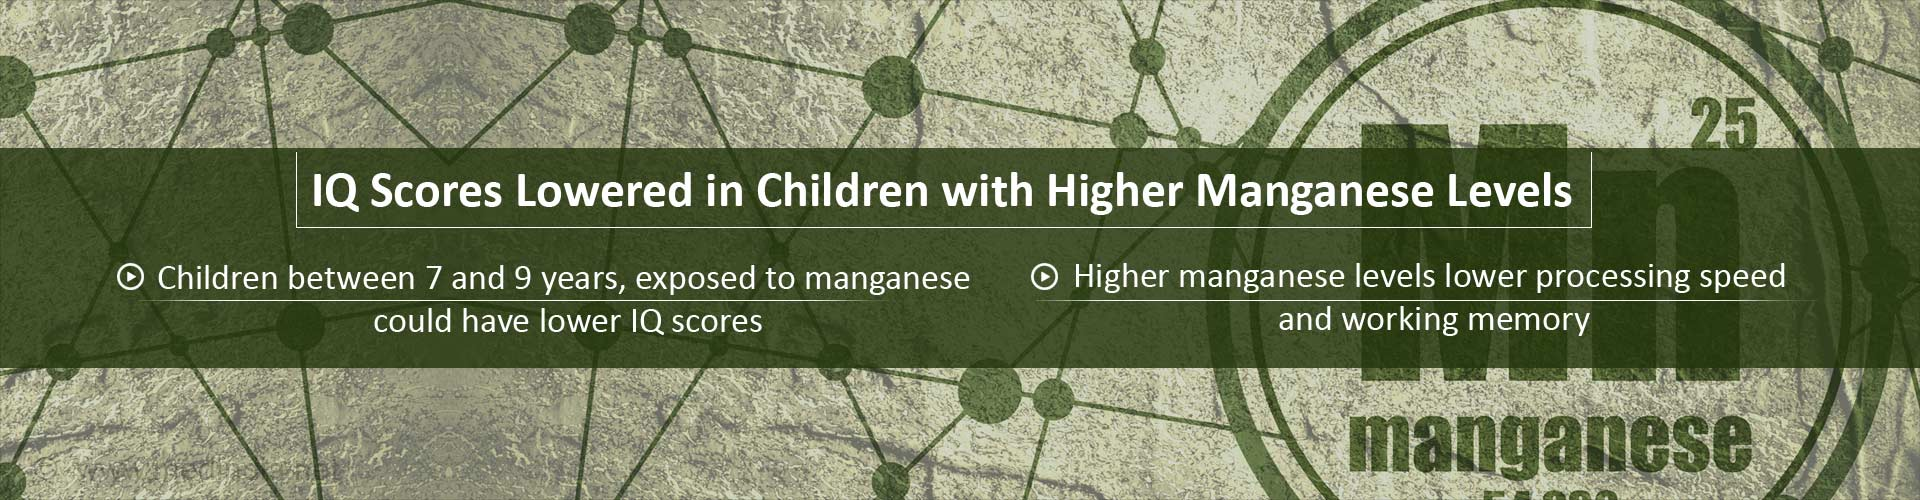 Higher Levels of Manganese Lower IQ Scores In Children